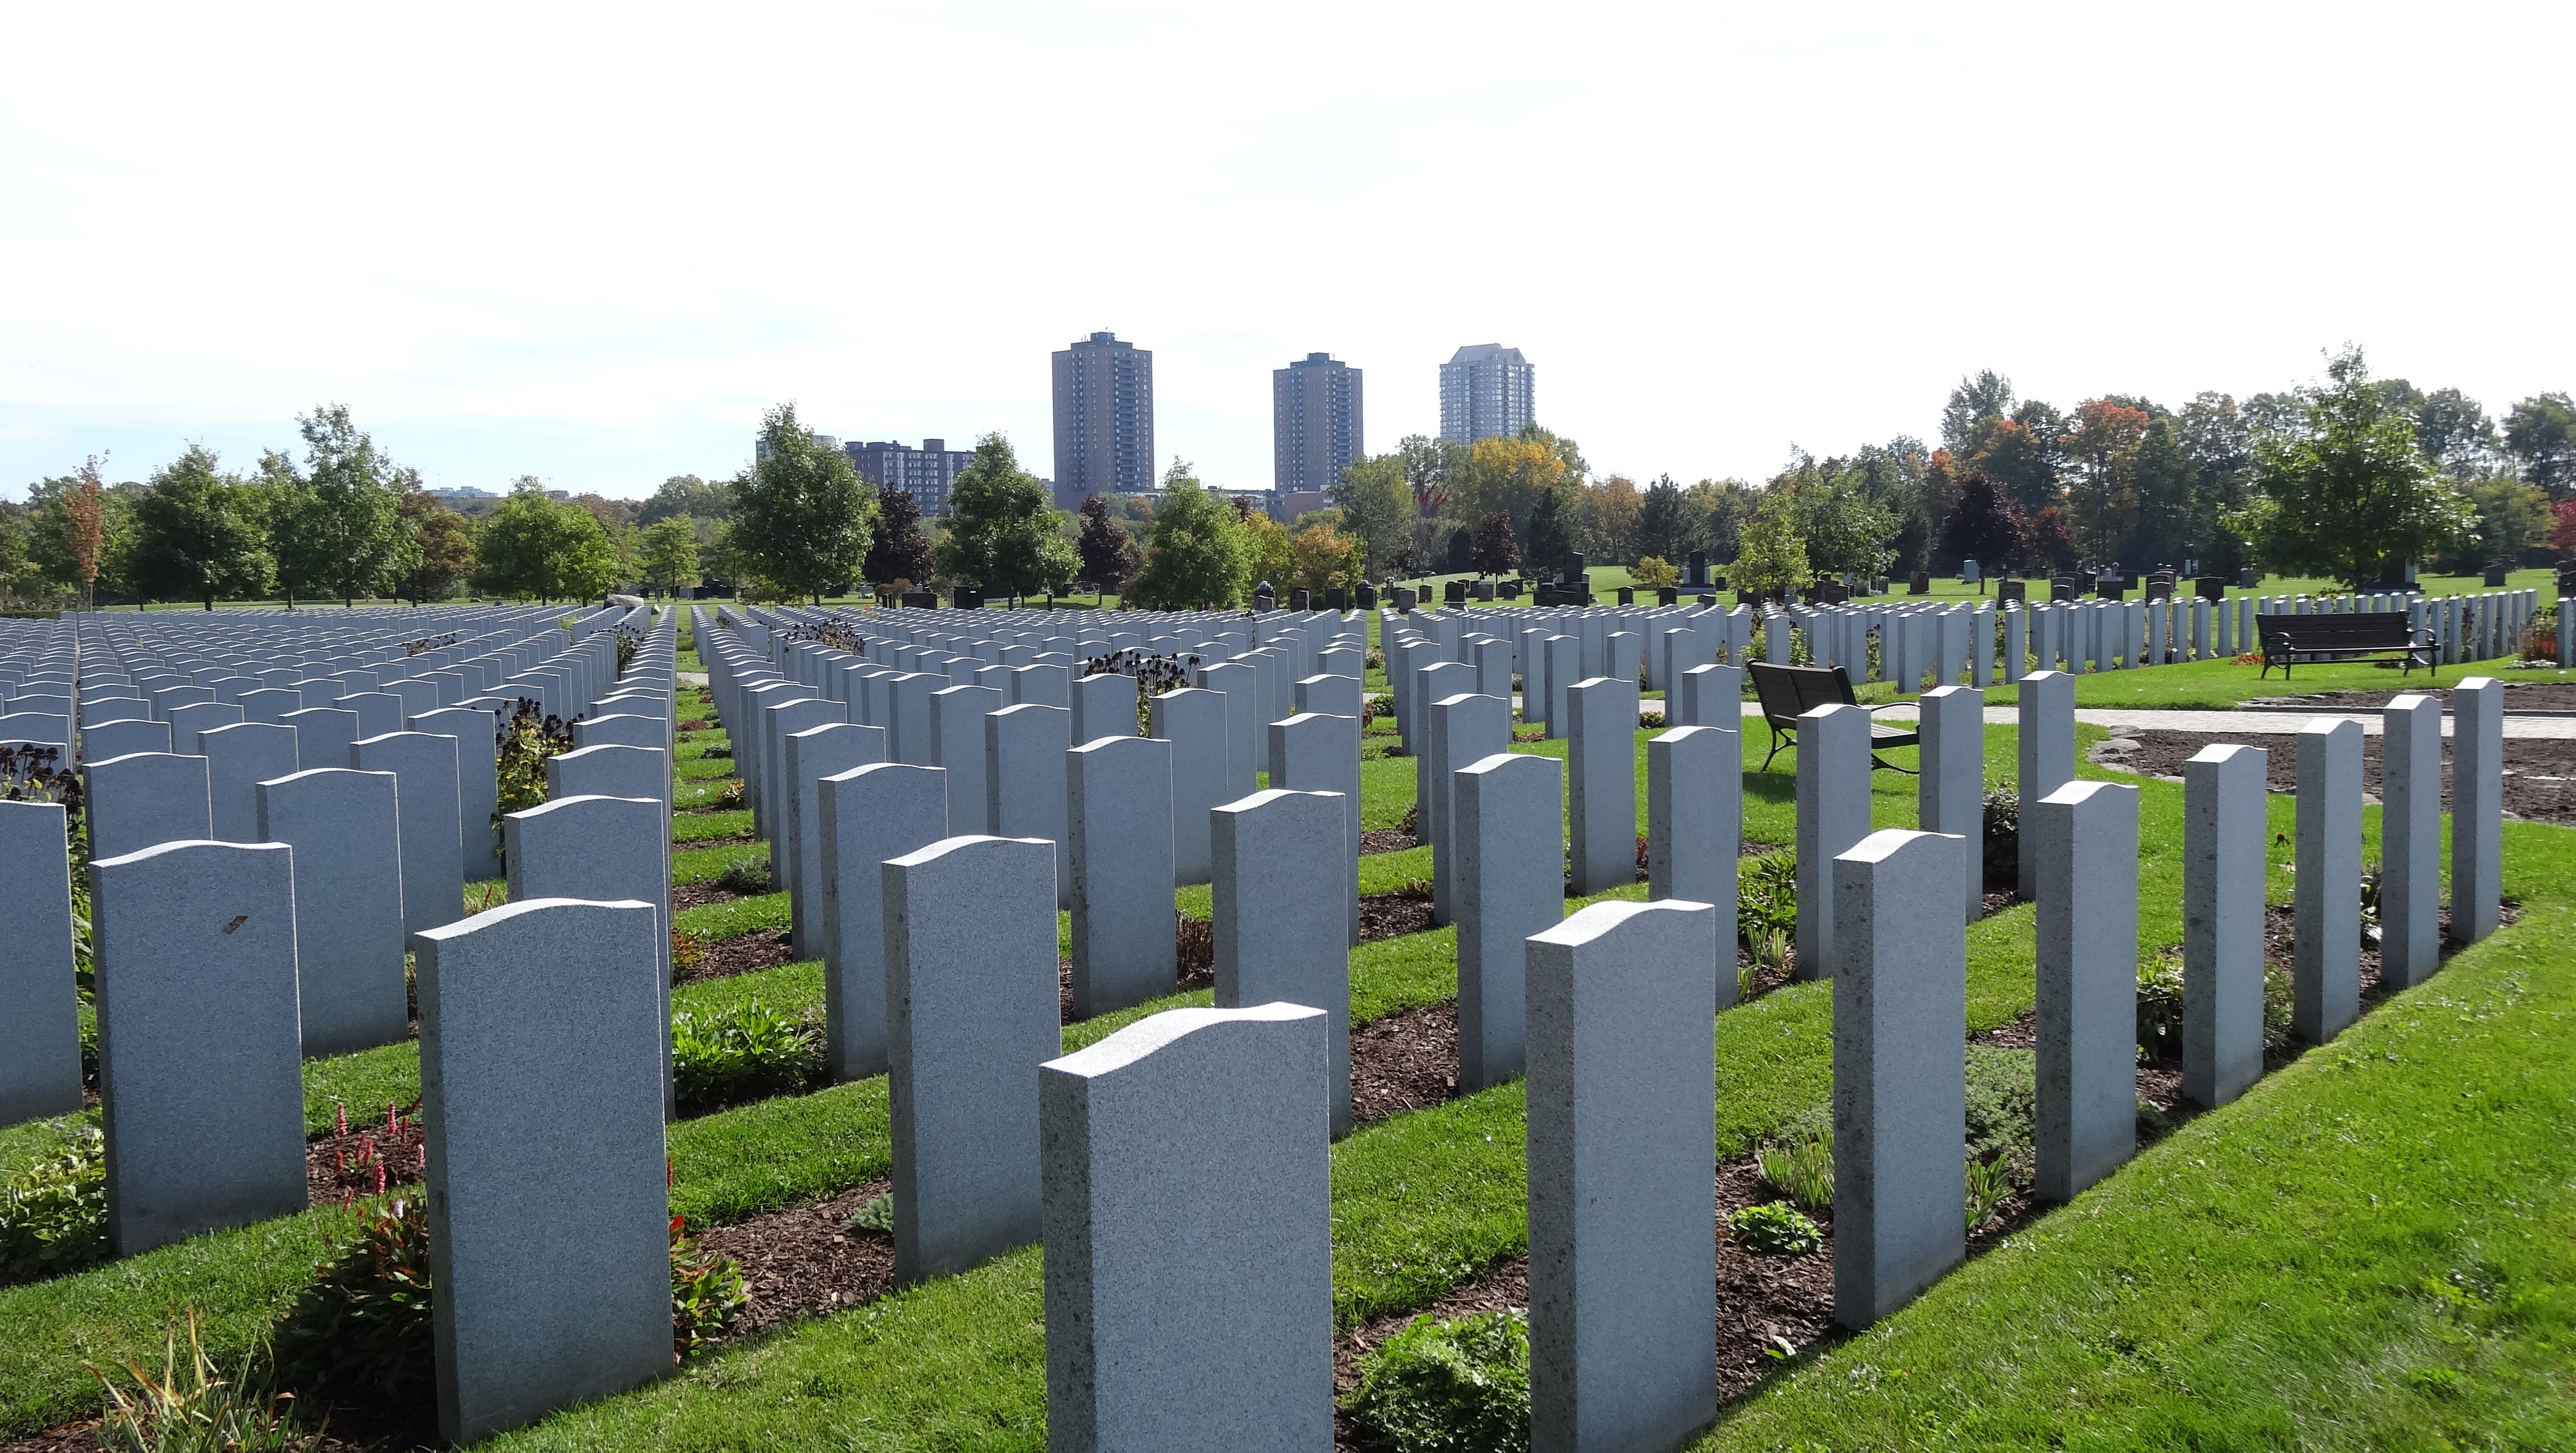 File:Beechwood Cemetery, the home of Canada's National Military Cemetery.jpg  - Wikimedia Commons